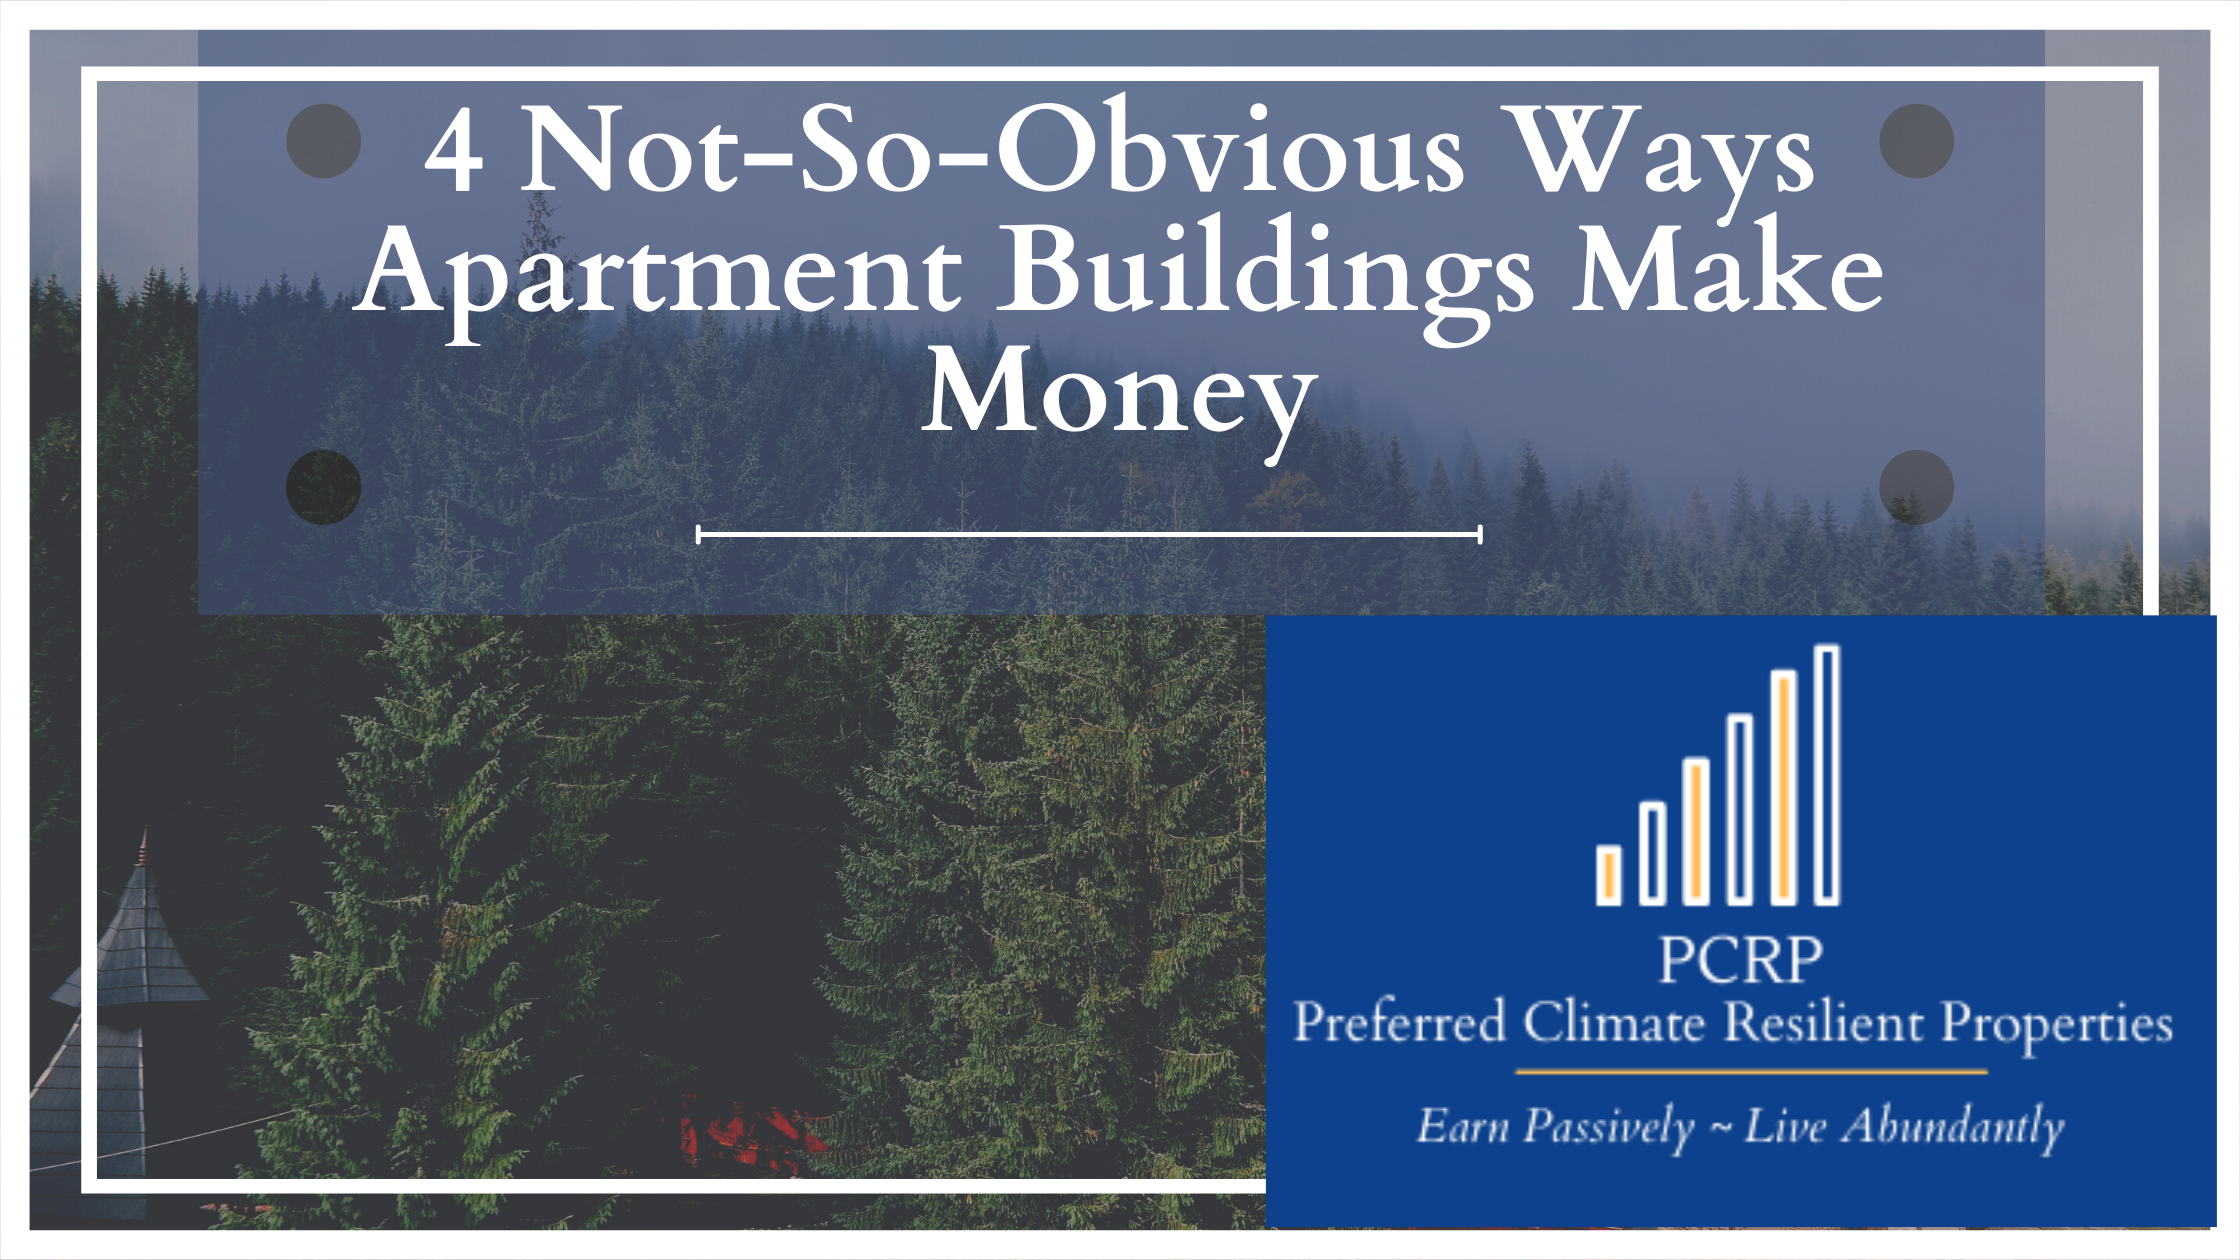 4 Not-So-Obvious Ways Apartments Make Money - Picture of Wooded Area